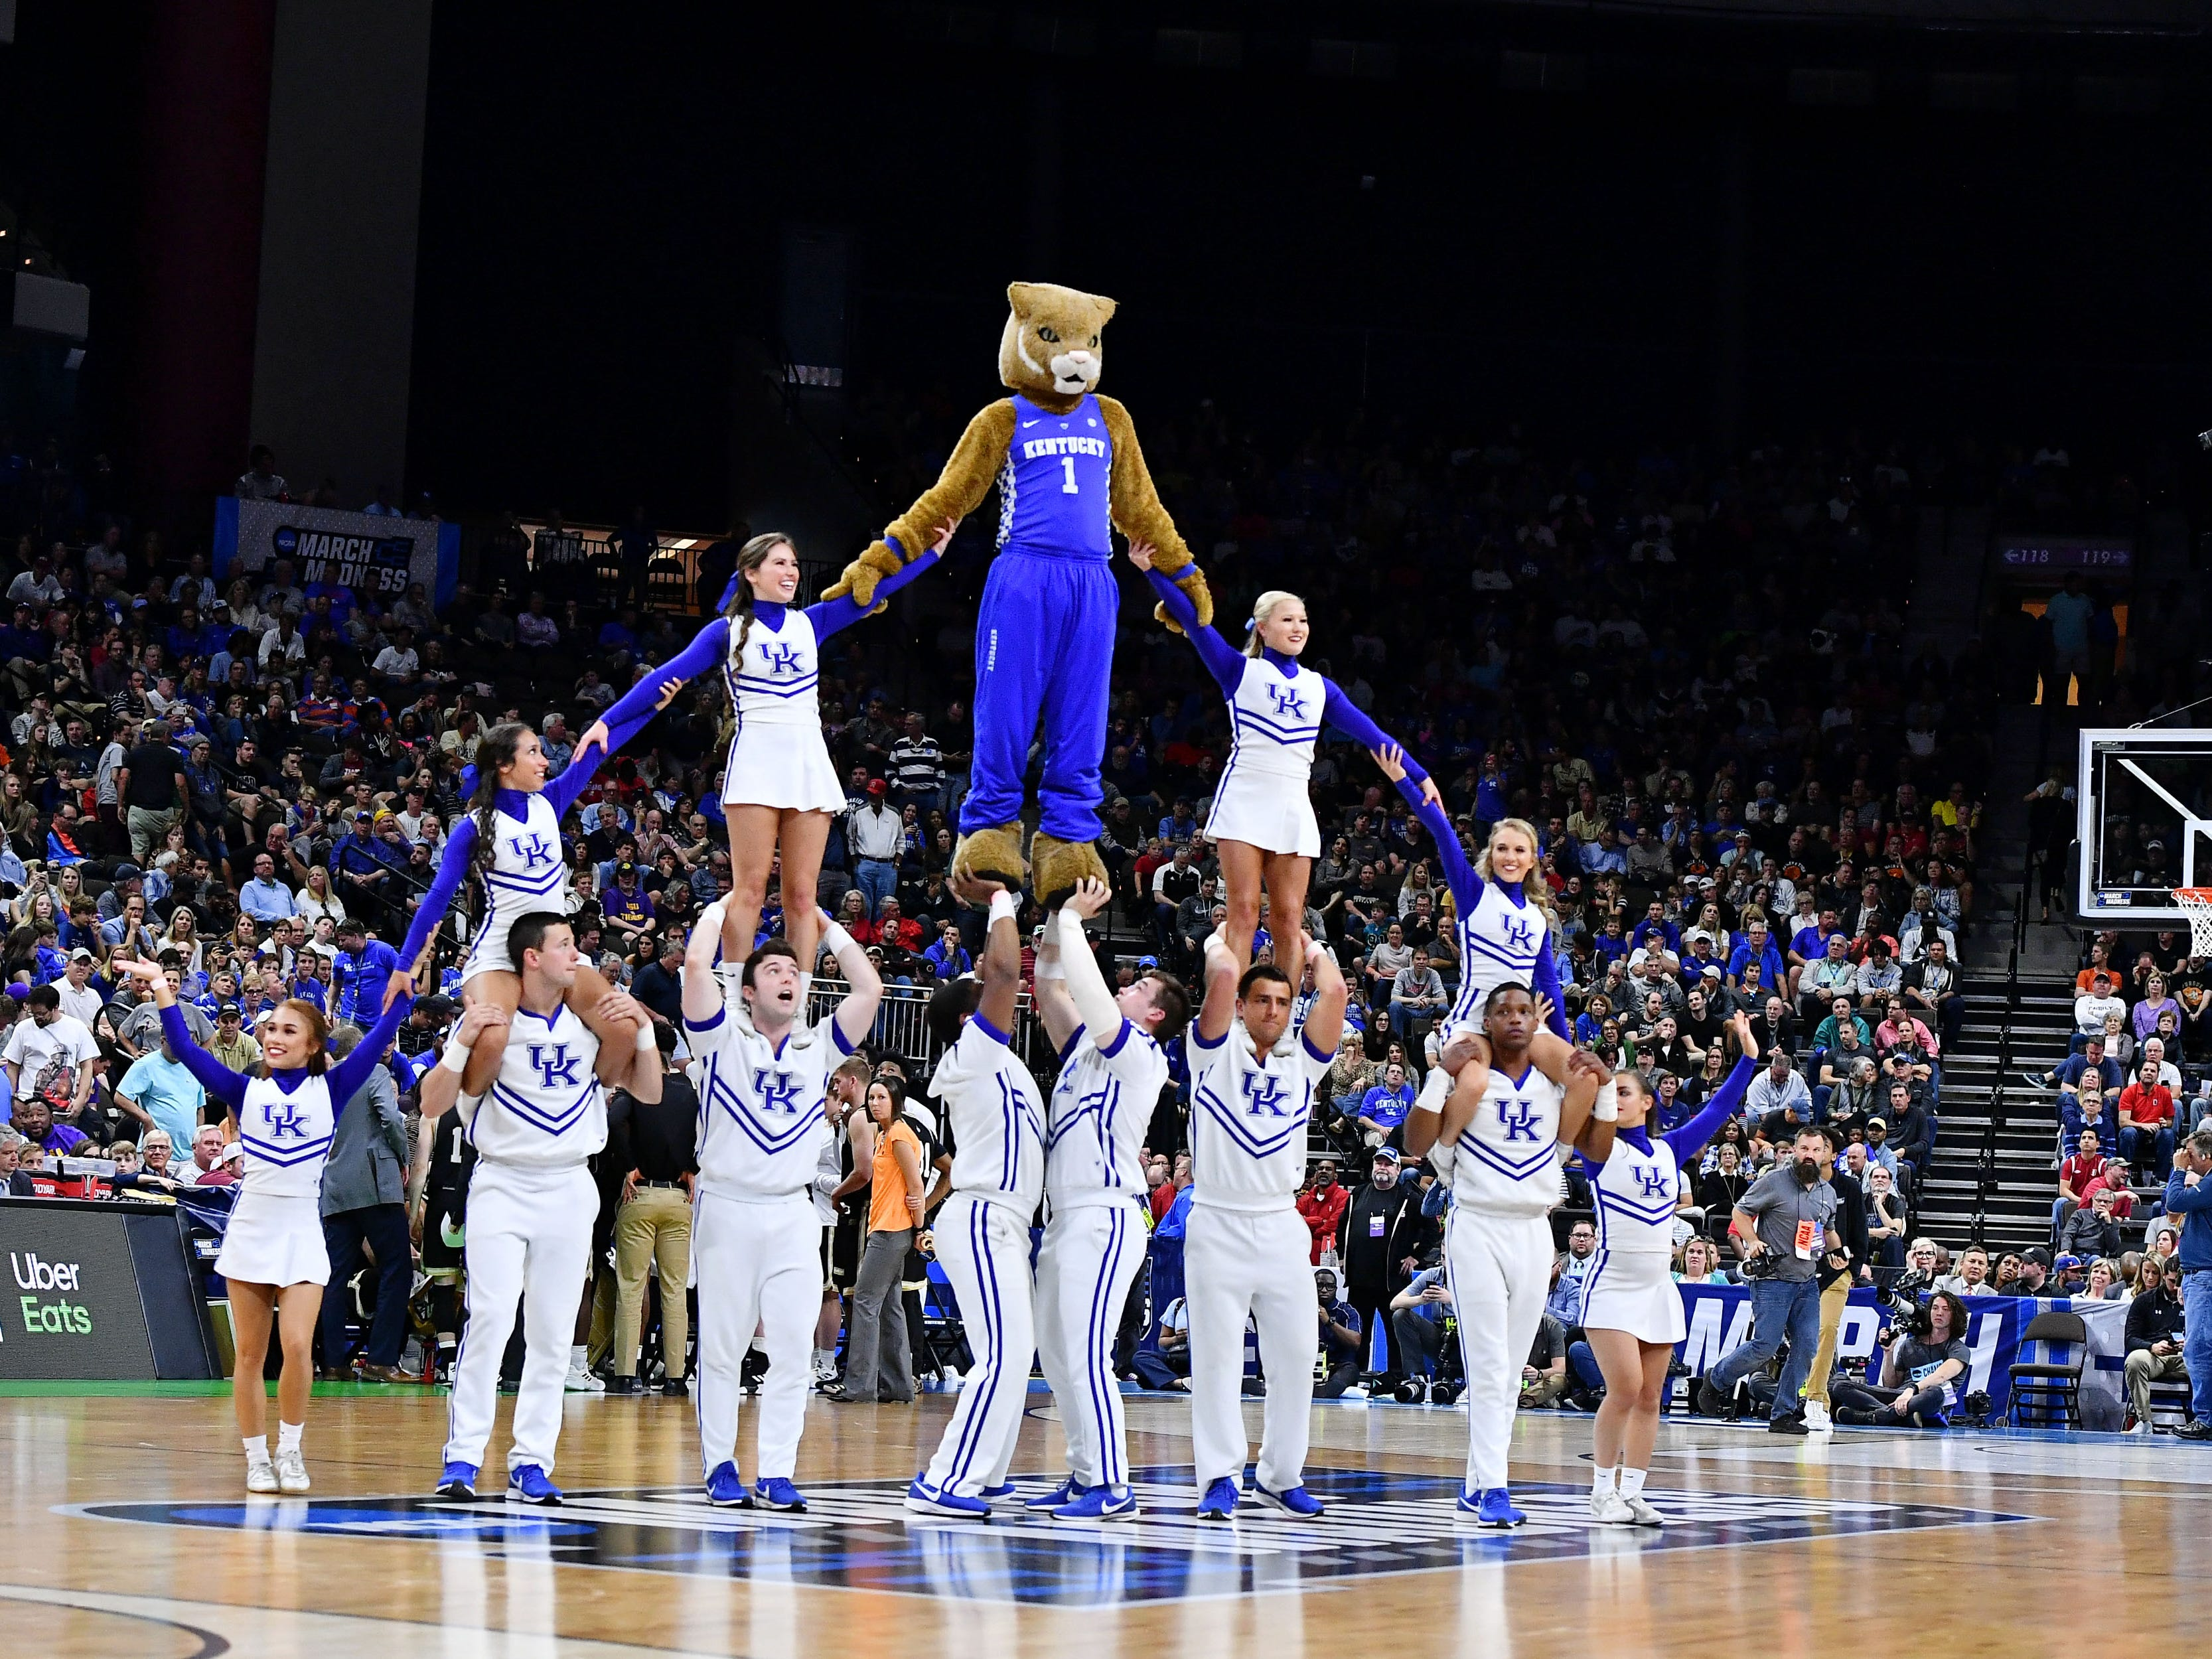 Round of 32: The Kentucky Wildcats cheerleaders and mascot perform during the game against the Wofford Terriers.